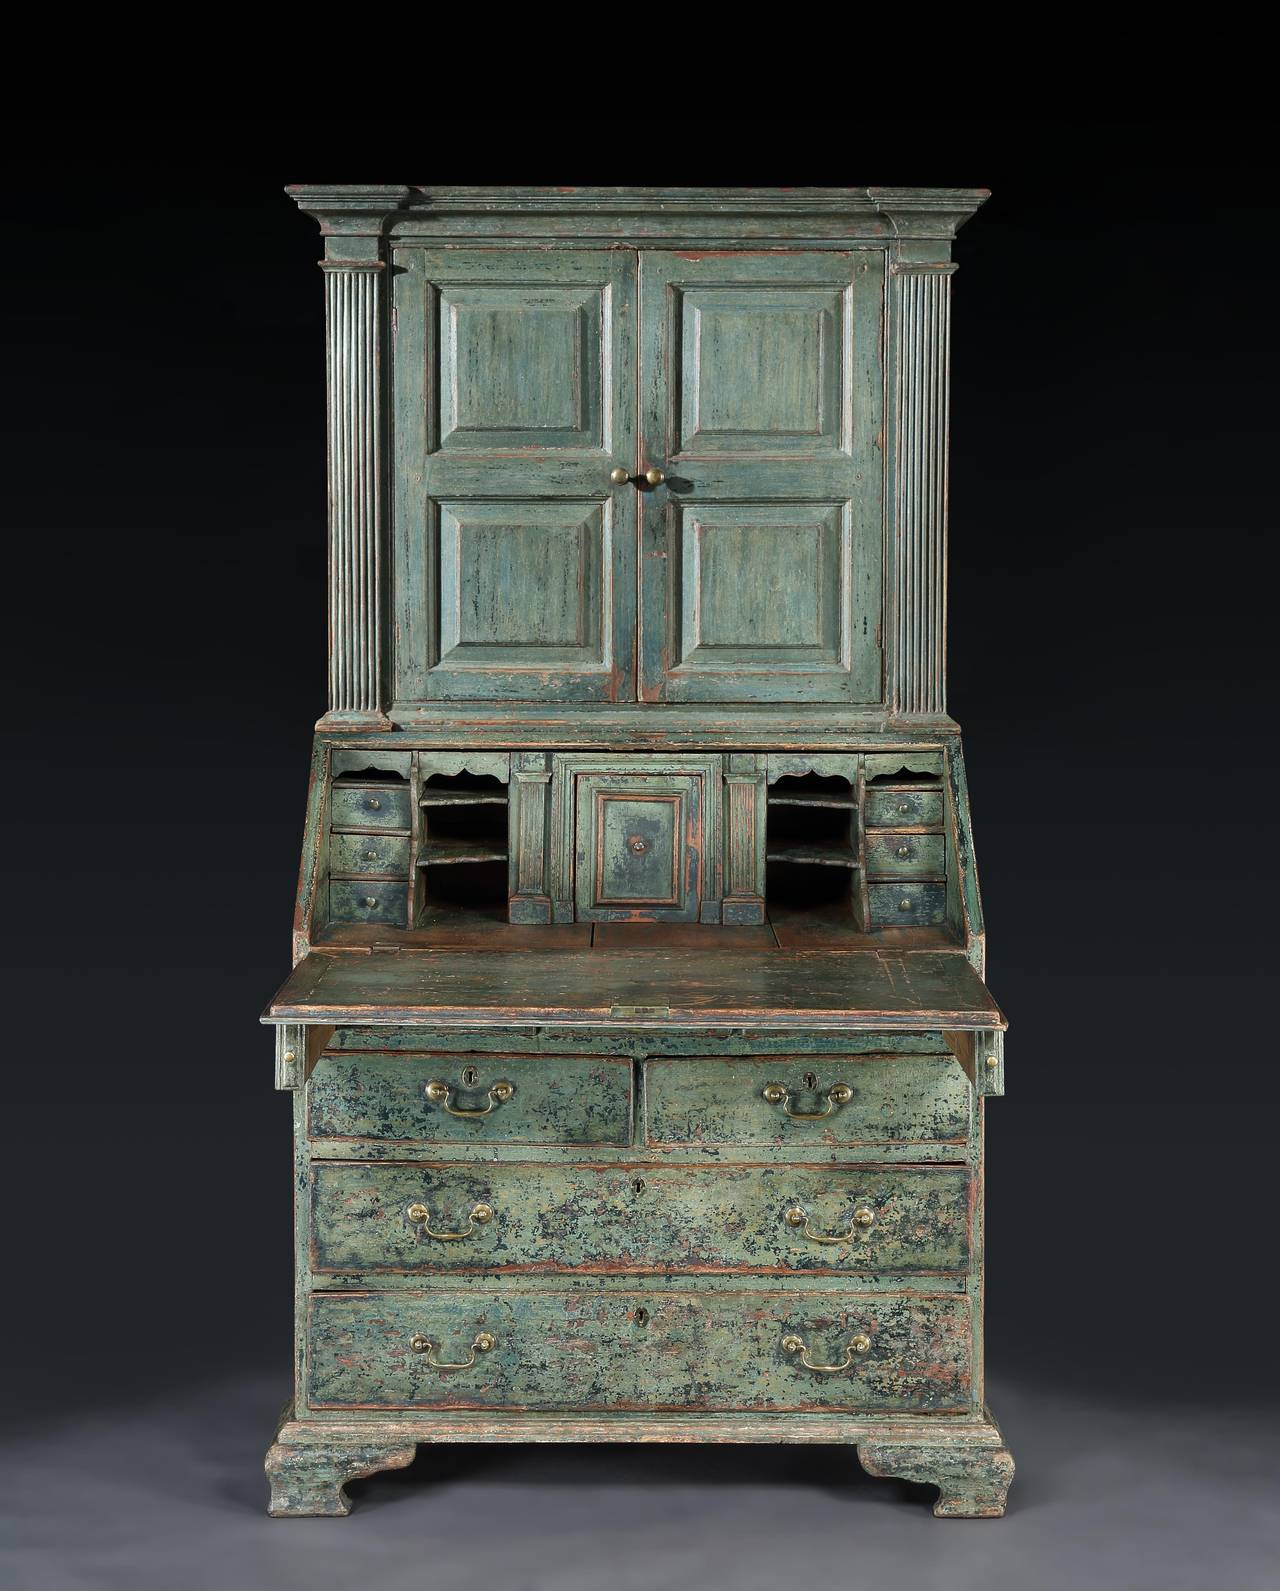 extraordinary c18th original painted bureau cabinet at 1stdibs. Black Bedroom Furniture Sets. Home Design Ideas